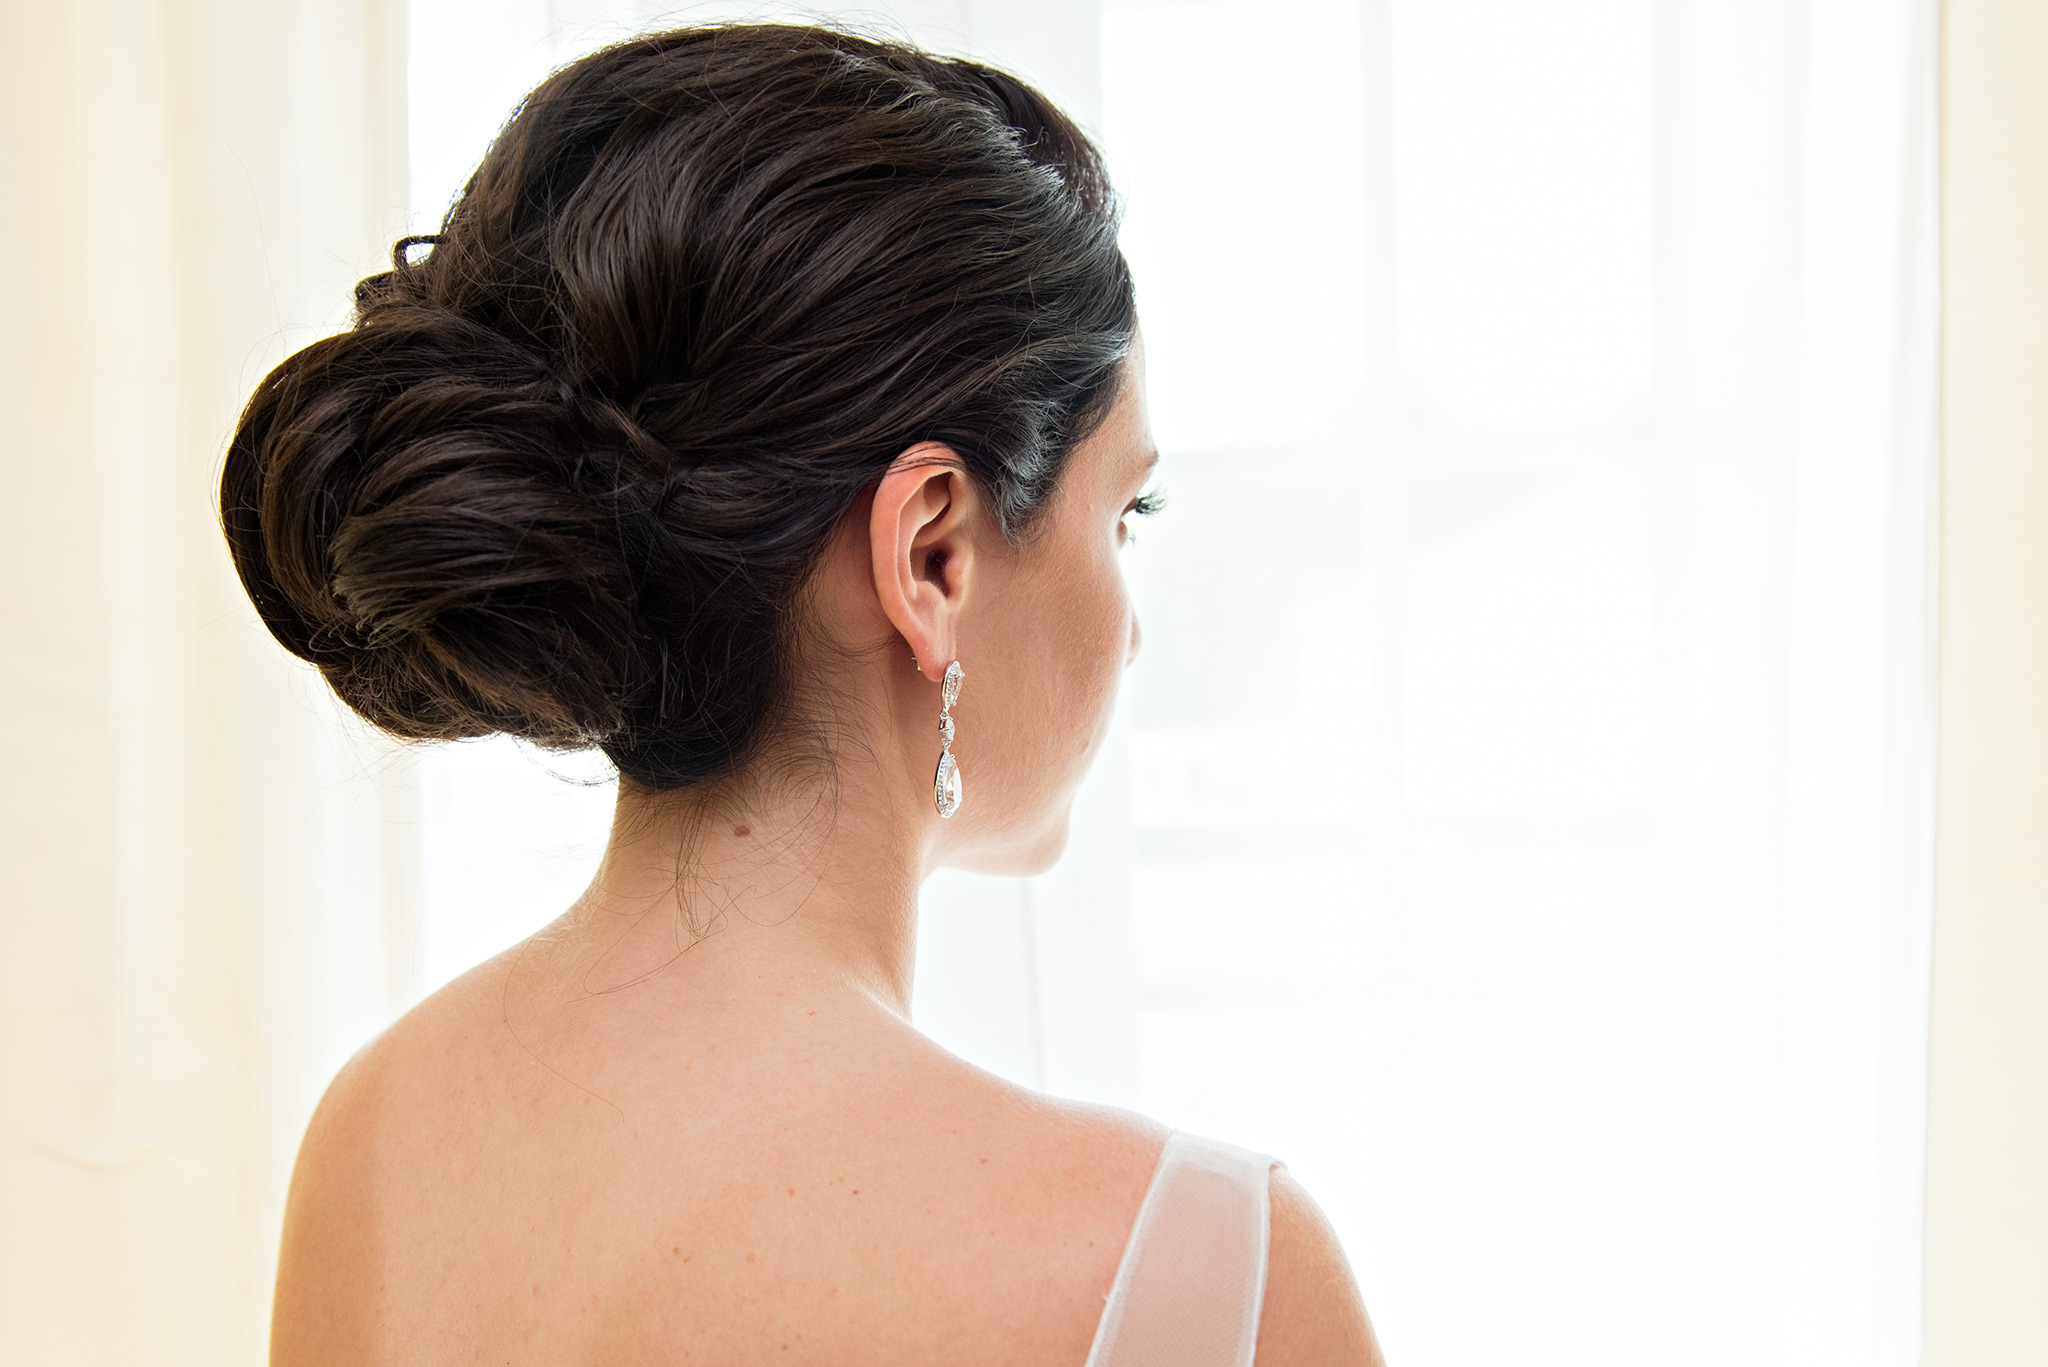 ct wedding photography. connecticut wedding photographer. wedding hair up do.